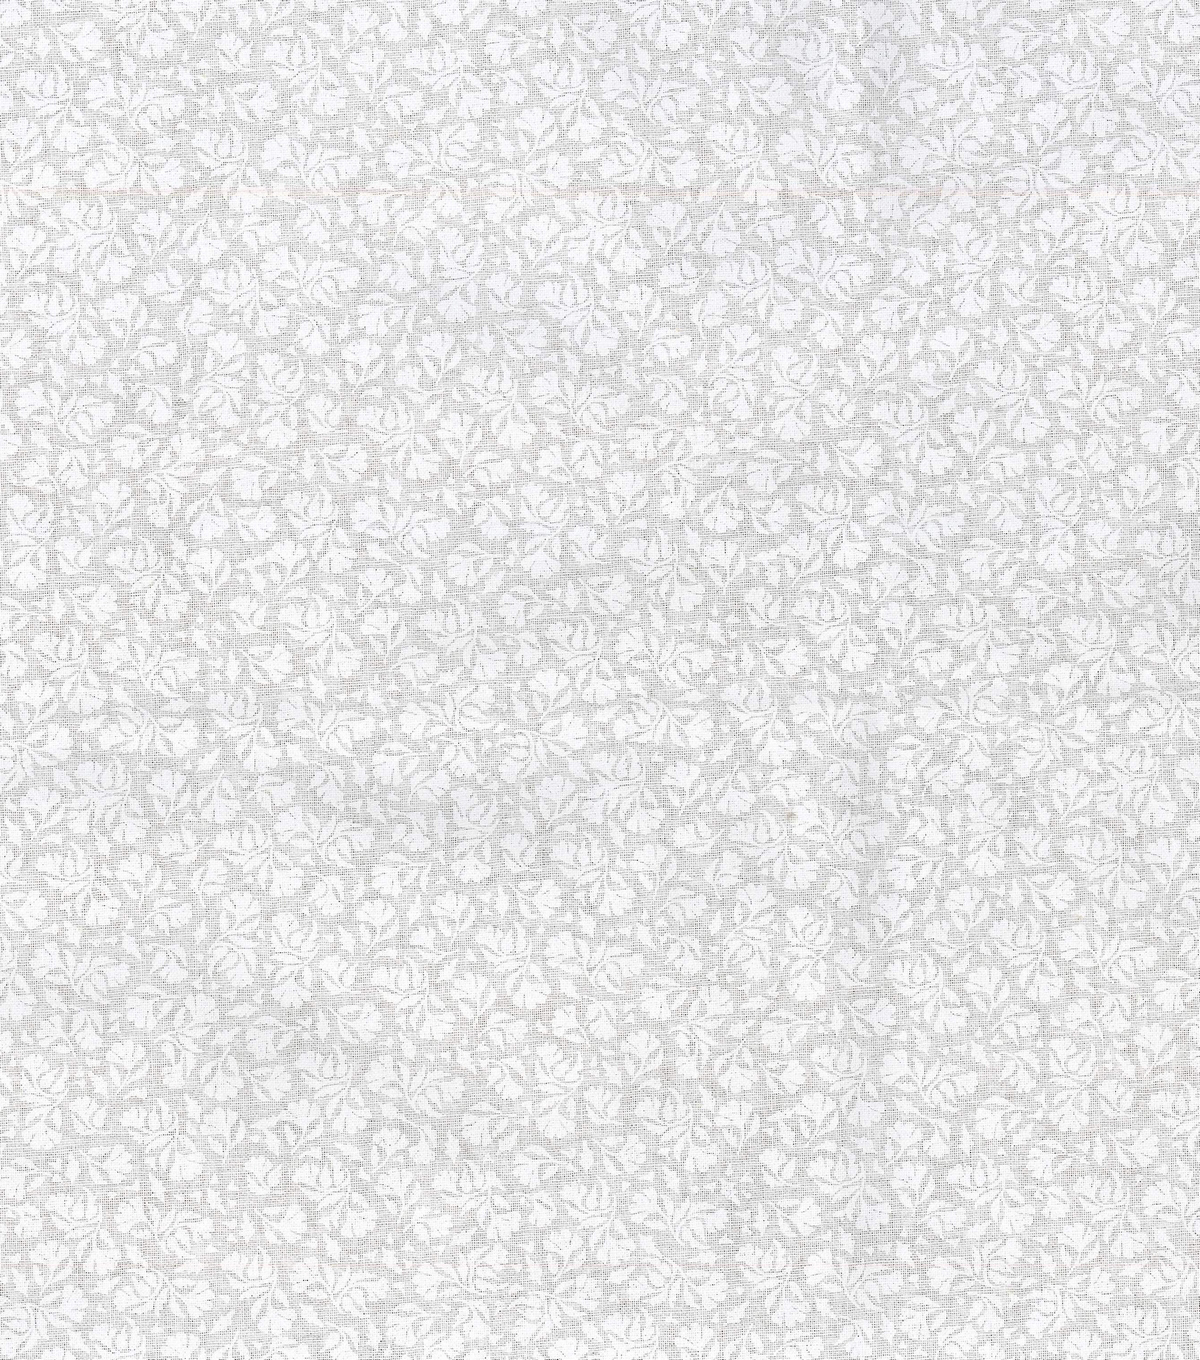 Keepsake Calico Cotton Fabric-Scatter Vines on White